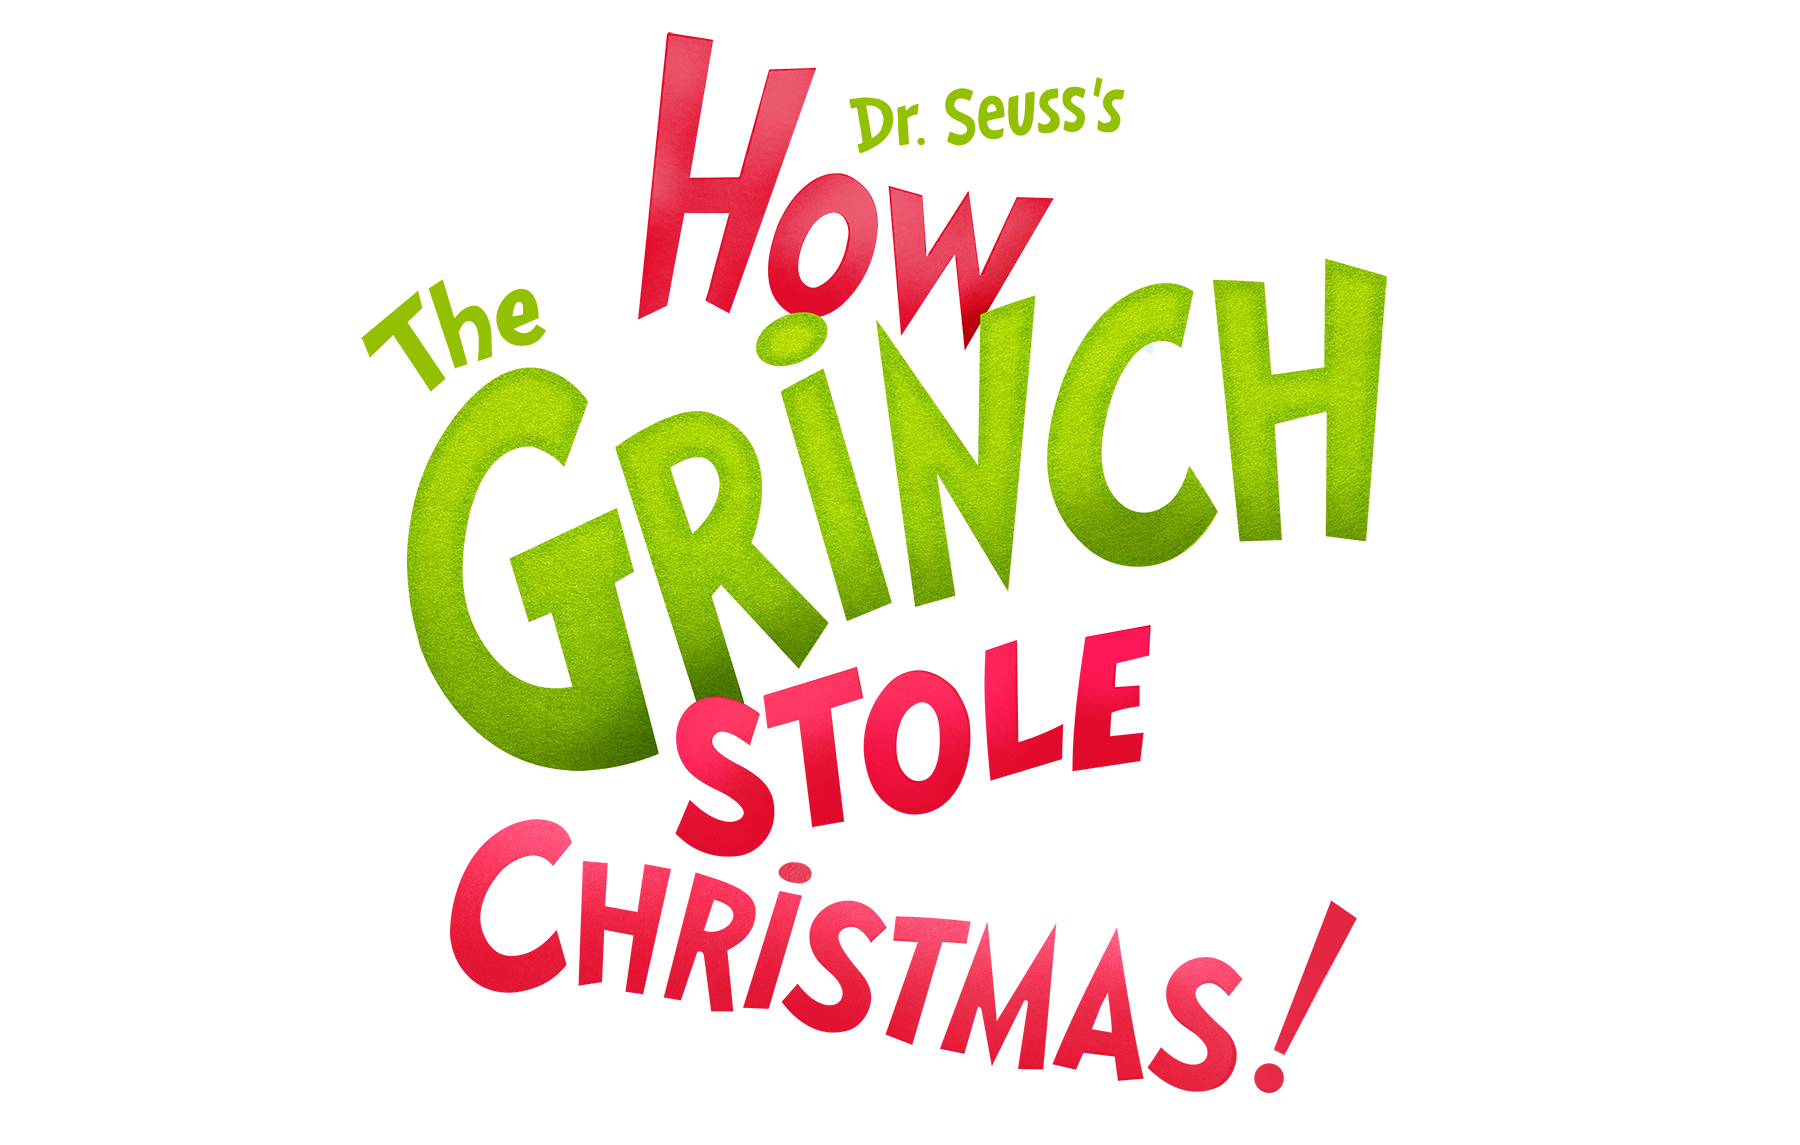 The grinch logo png. Dr seuss s how